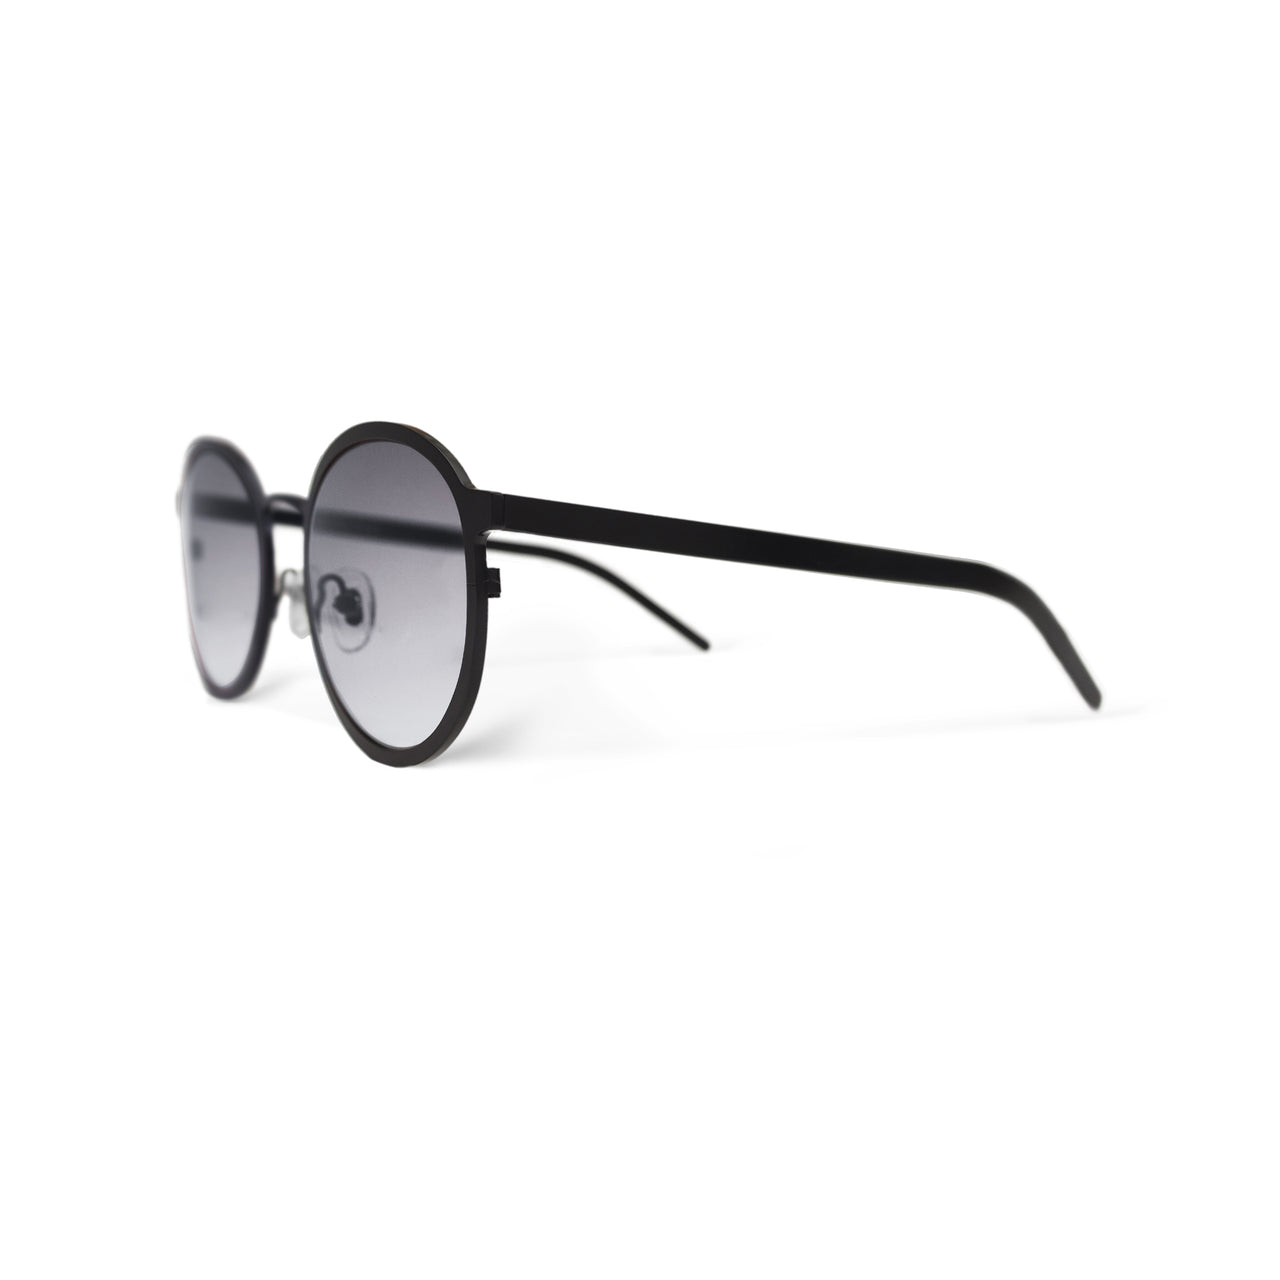 Metal. Matte Black. Smoke Lens. - BLYSZAK eyewear eyewear - eyewear, optical, sunglasses